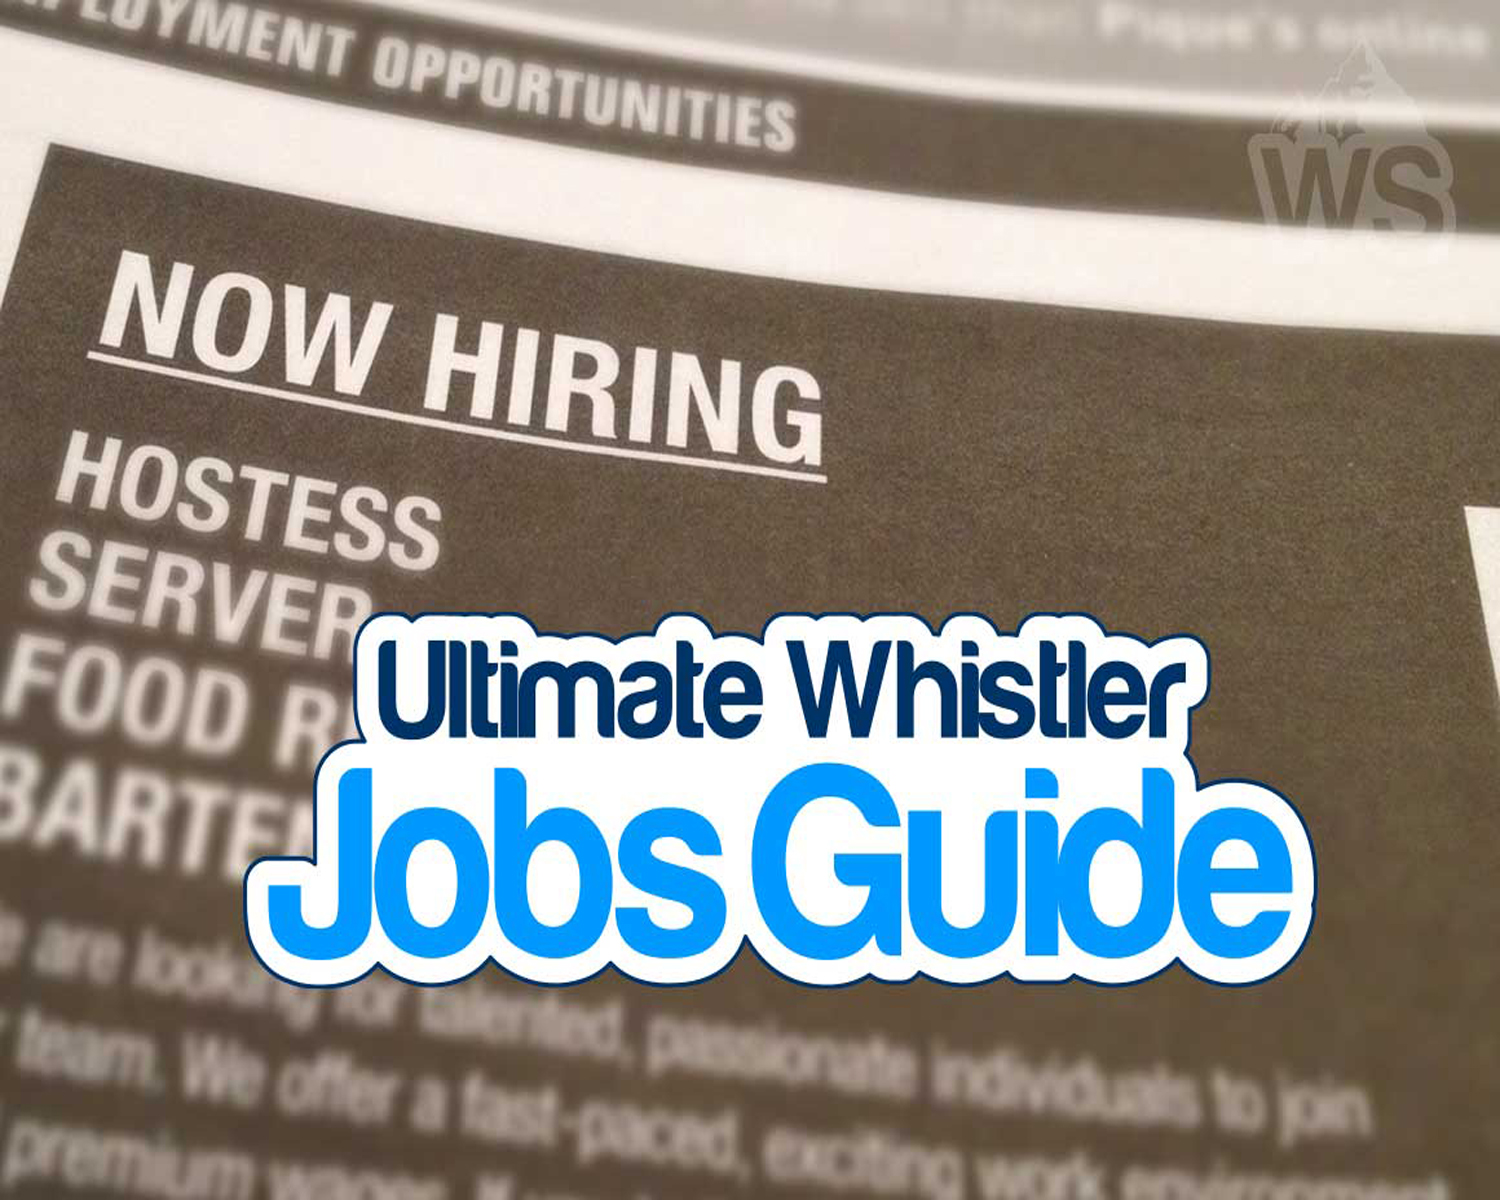 whistler job guide